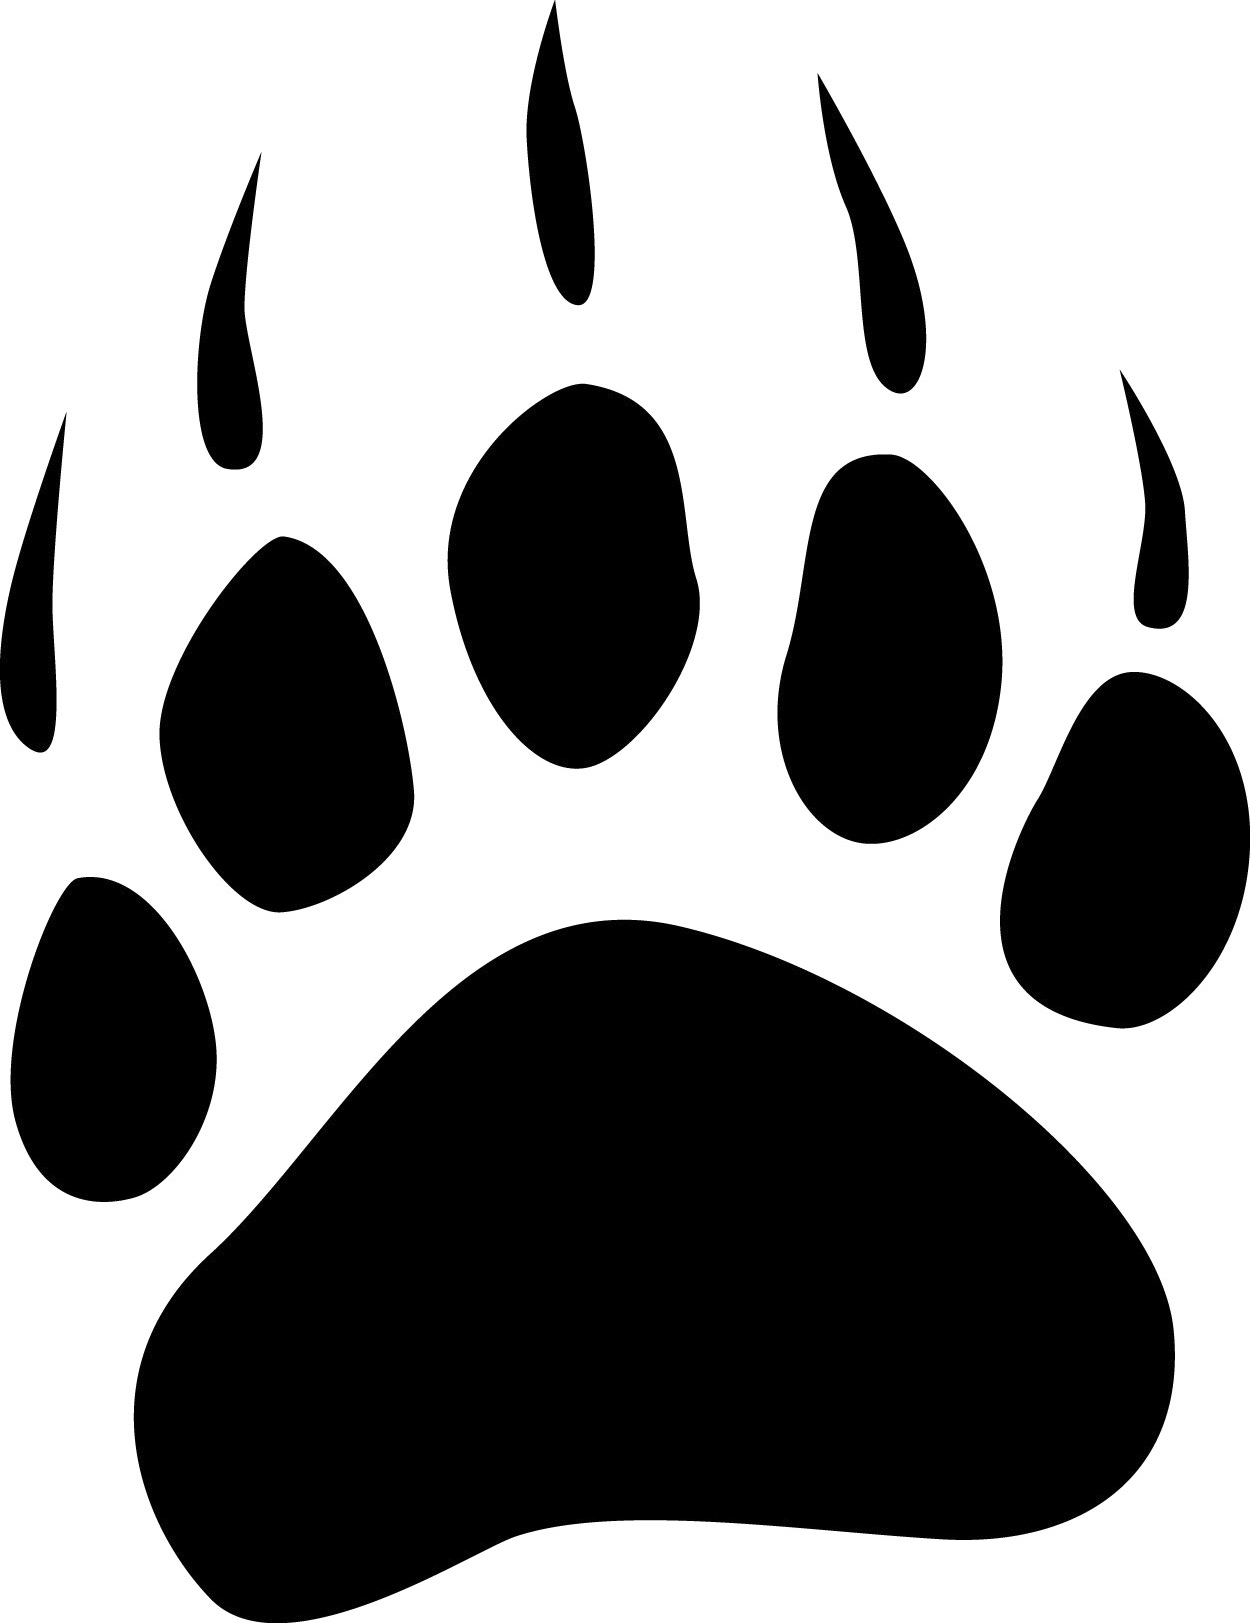 Grizzly Bear Paw Print Clipart-grizzly bear paw print clipart-15